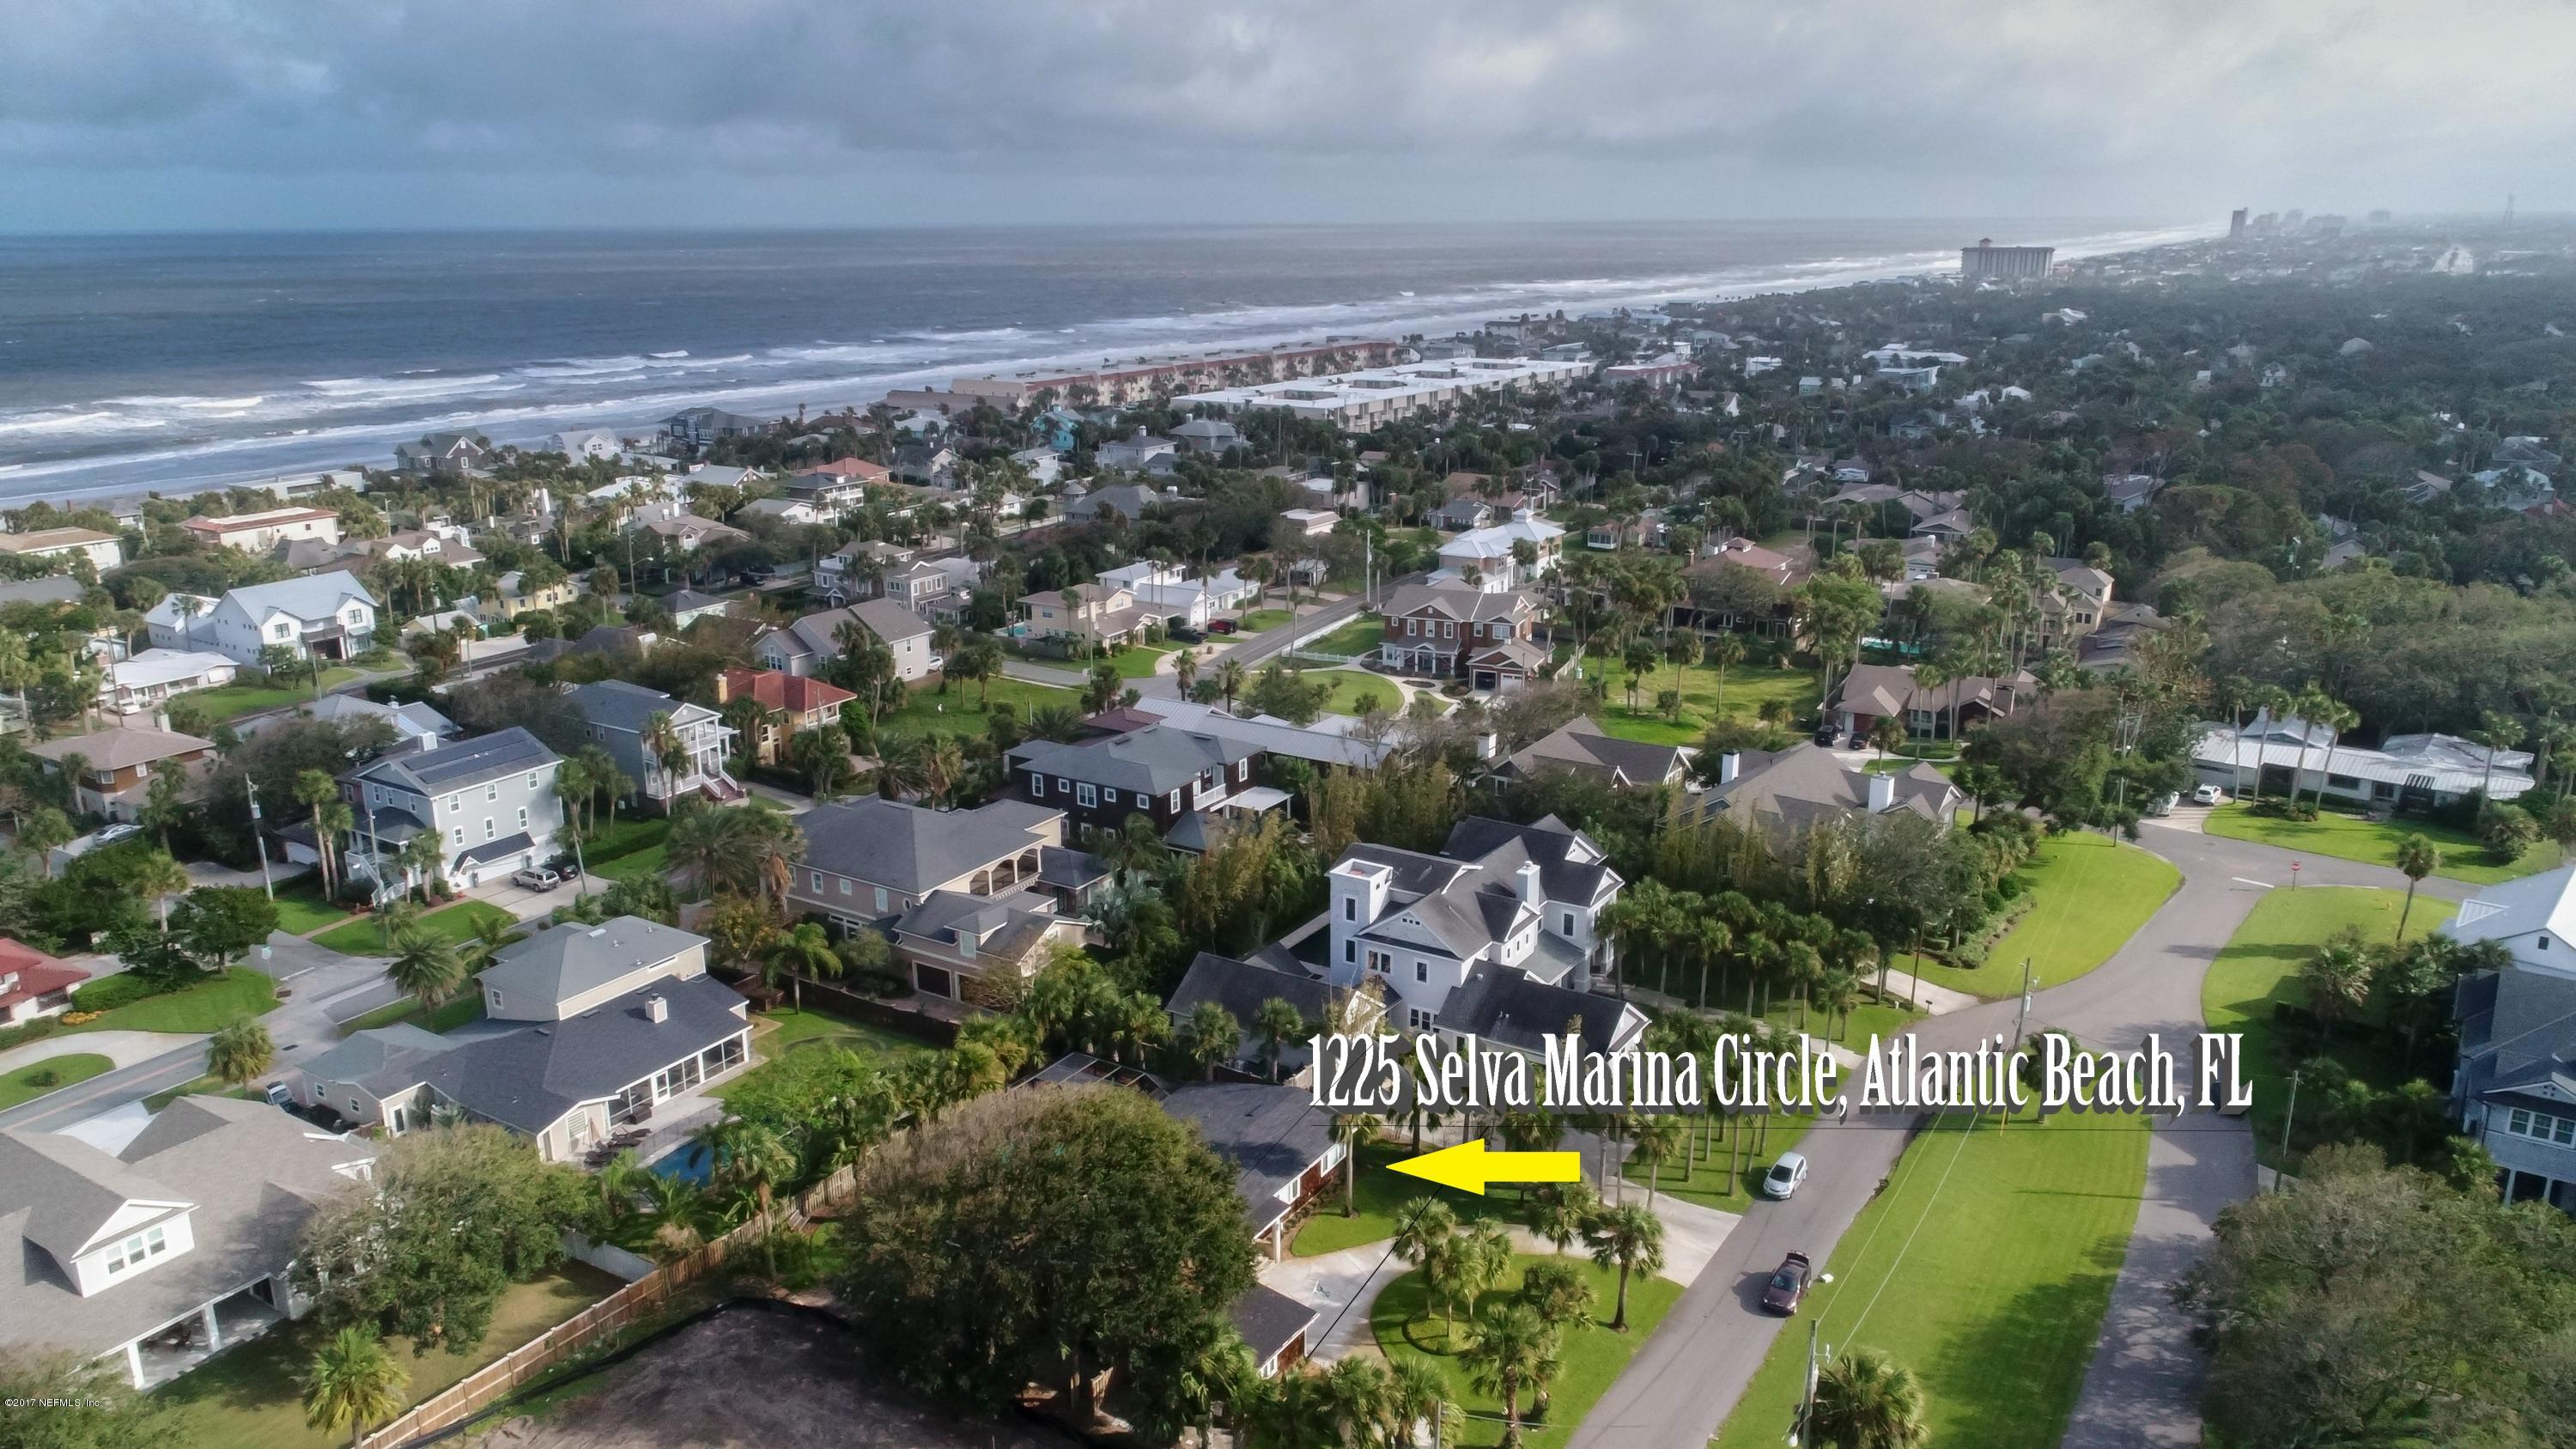 1225 SELVA MARINA, ATLANTIC BEACH, FLORIDA 32233, 3 Bedrooms Bedrooms, ,3 BathroomsBathrooms,Residential - single family,For sale,SELVA MARINA,905590